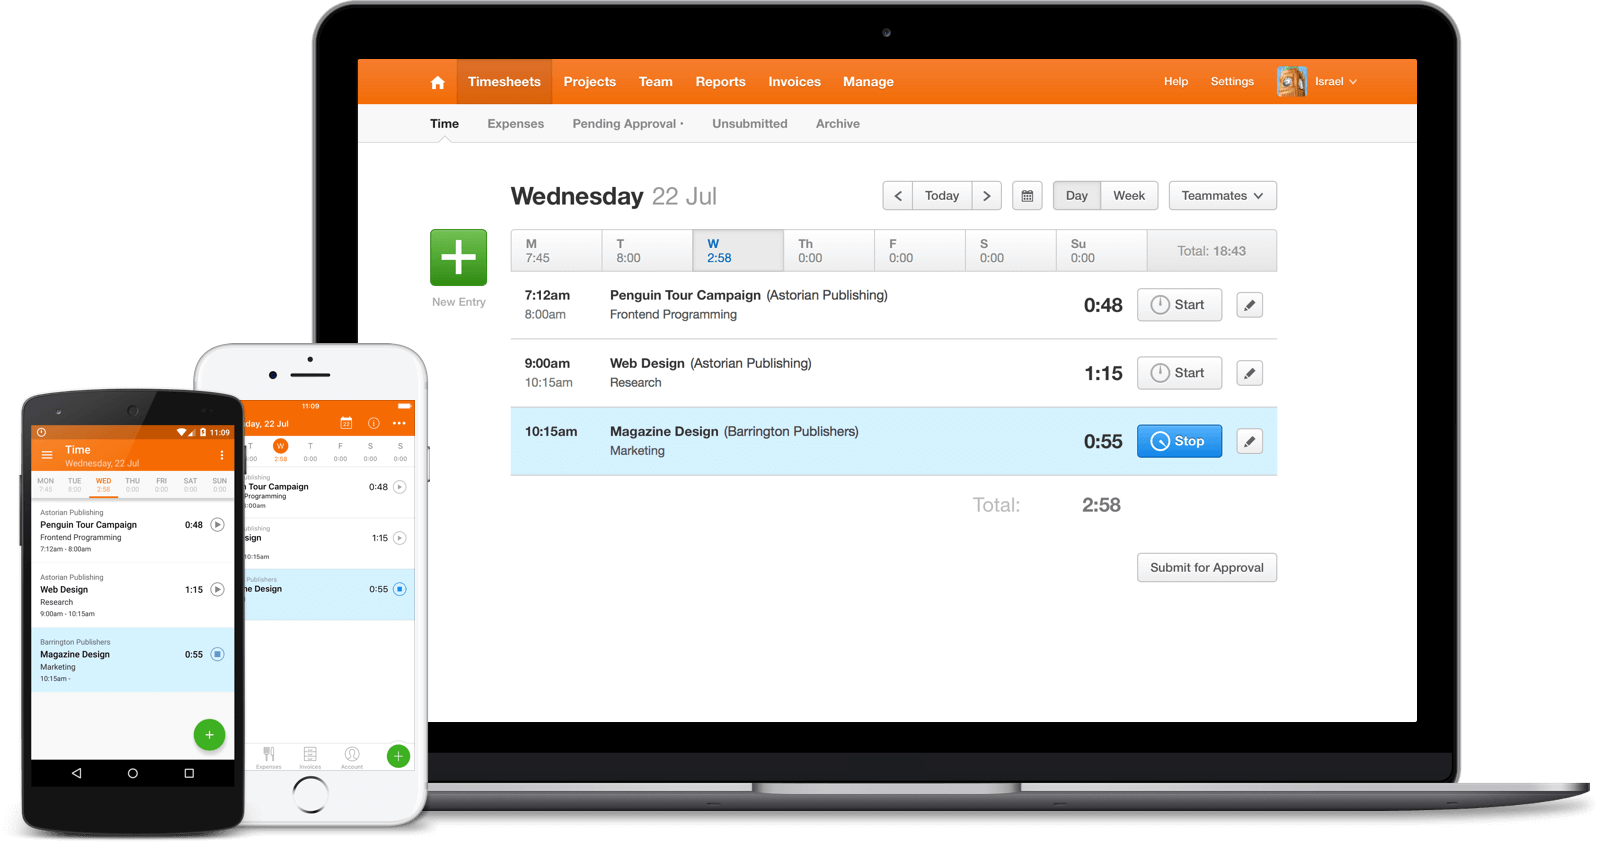 20 Best Time Management Apps for Small Business - Harvest